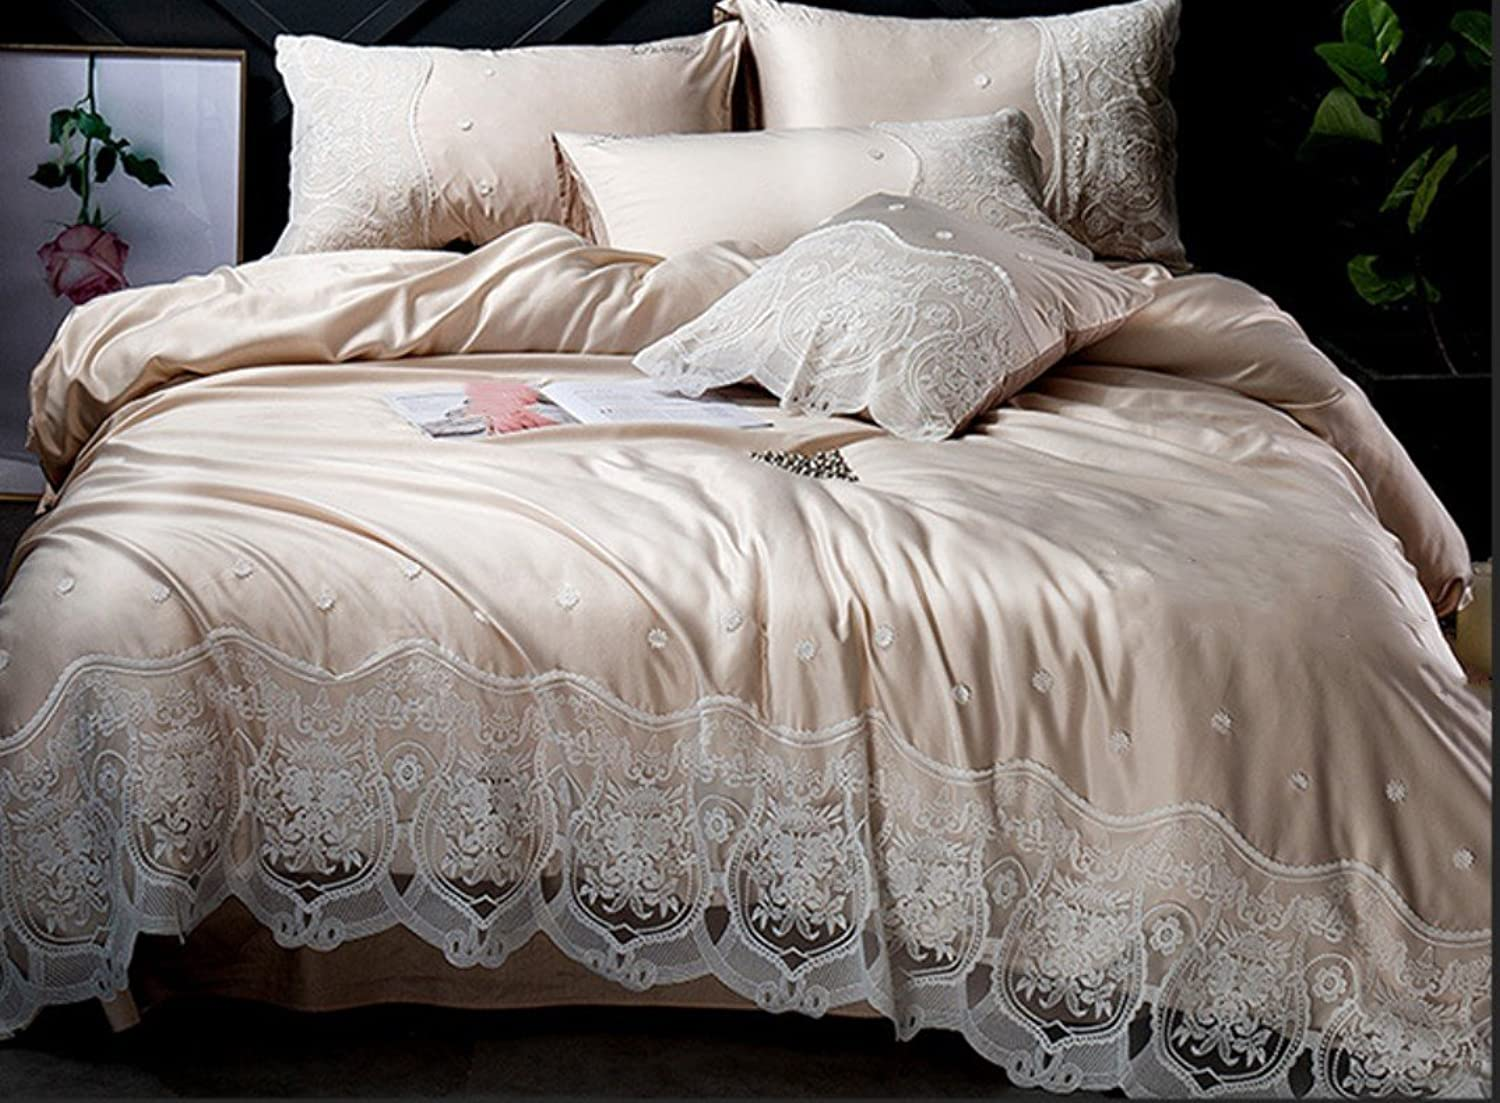 European Cotton Wash Satin Lace Four Sets of Simple Solid color Ice Silk Quilt Sheets Spring Summer Bedding ZXCV (color   Khaki, Size   200  230cm)